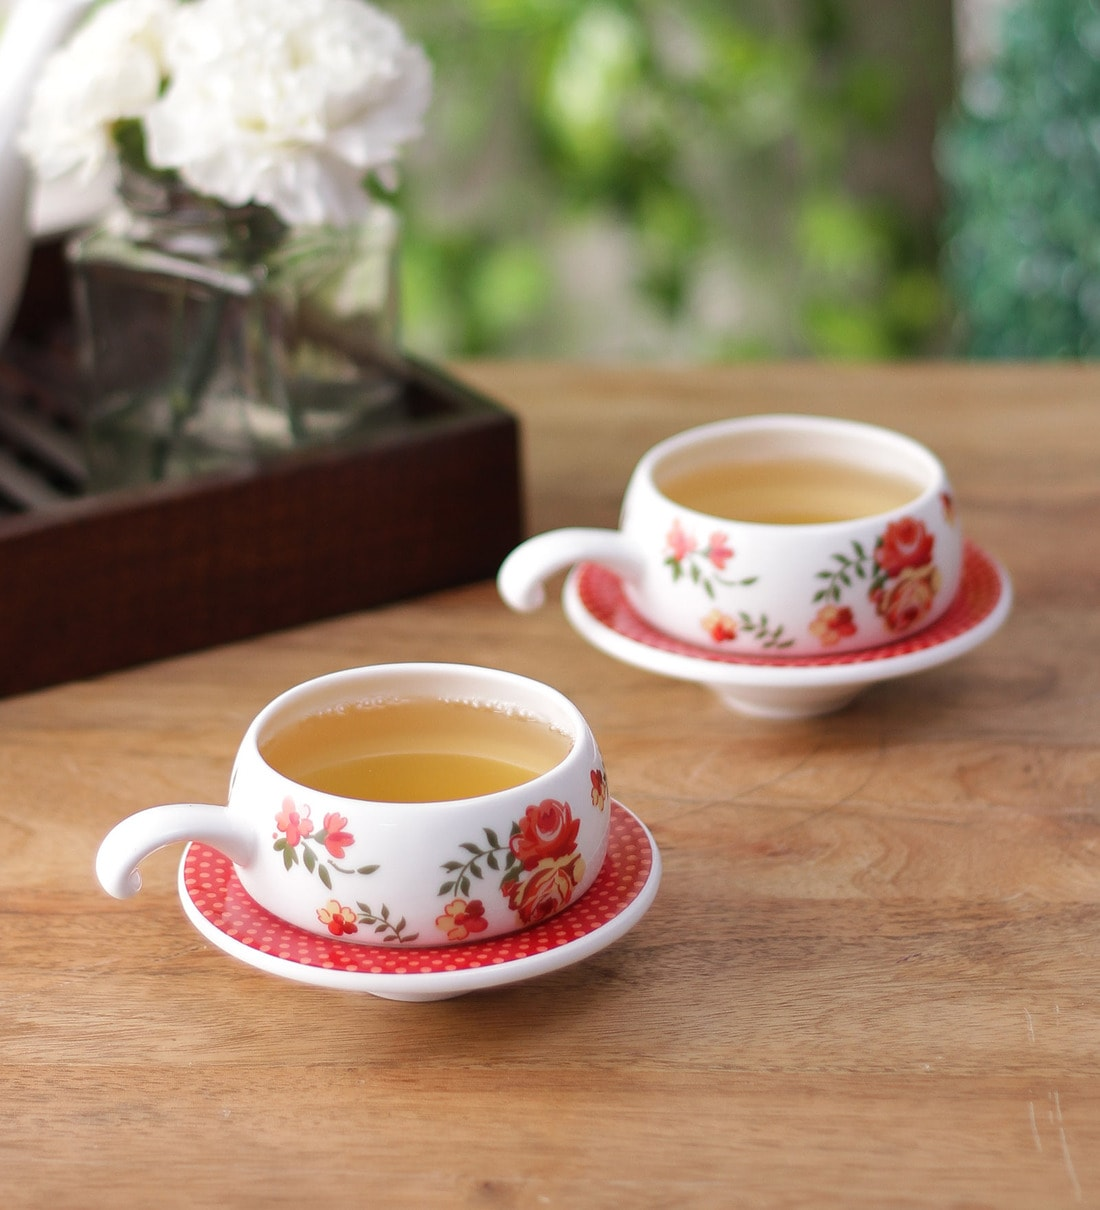 Buy Clay Craft White And Red Bone China 250 Ml Tea Cup And Saucer Set Set Of 6 Online Bone China Cups Saucers Bone China Cups Saucers Test Pepperfry Product